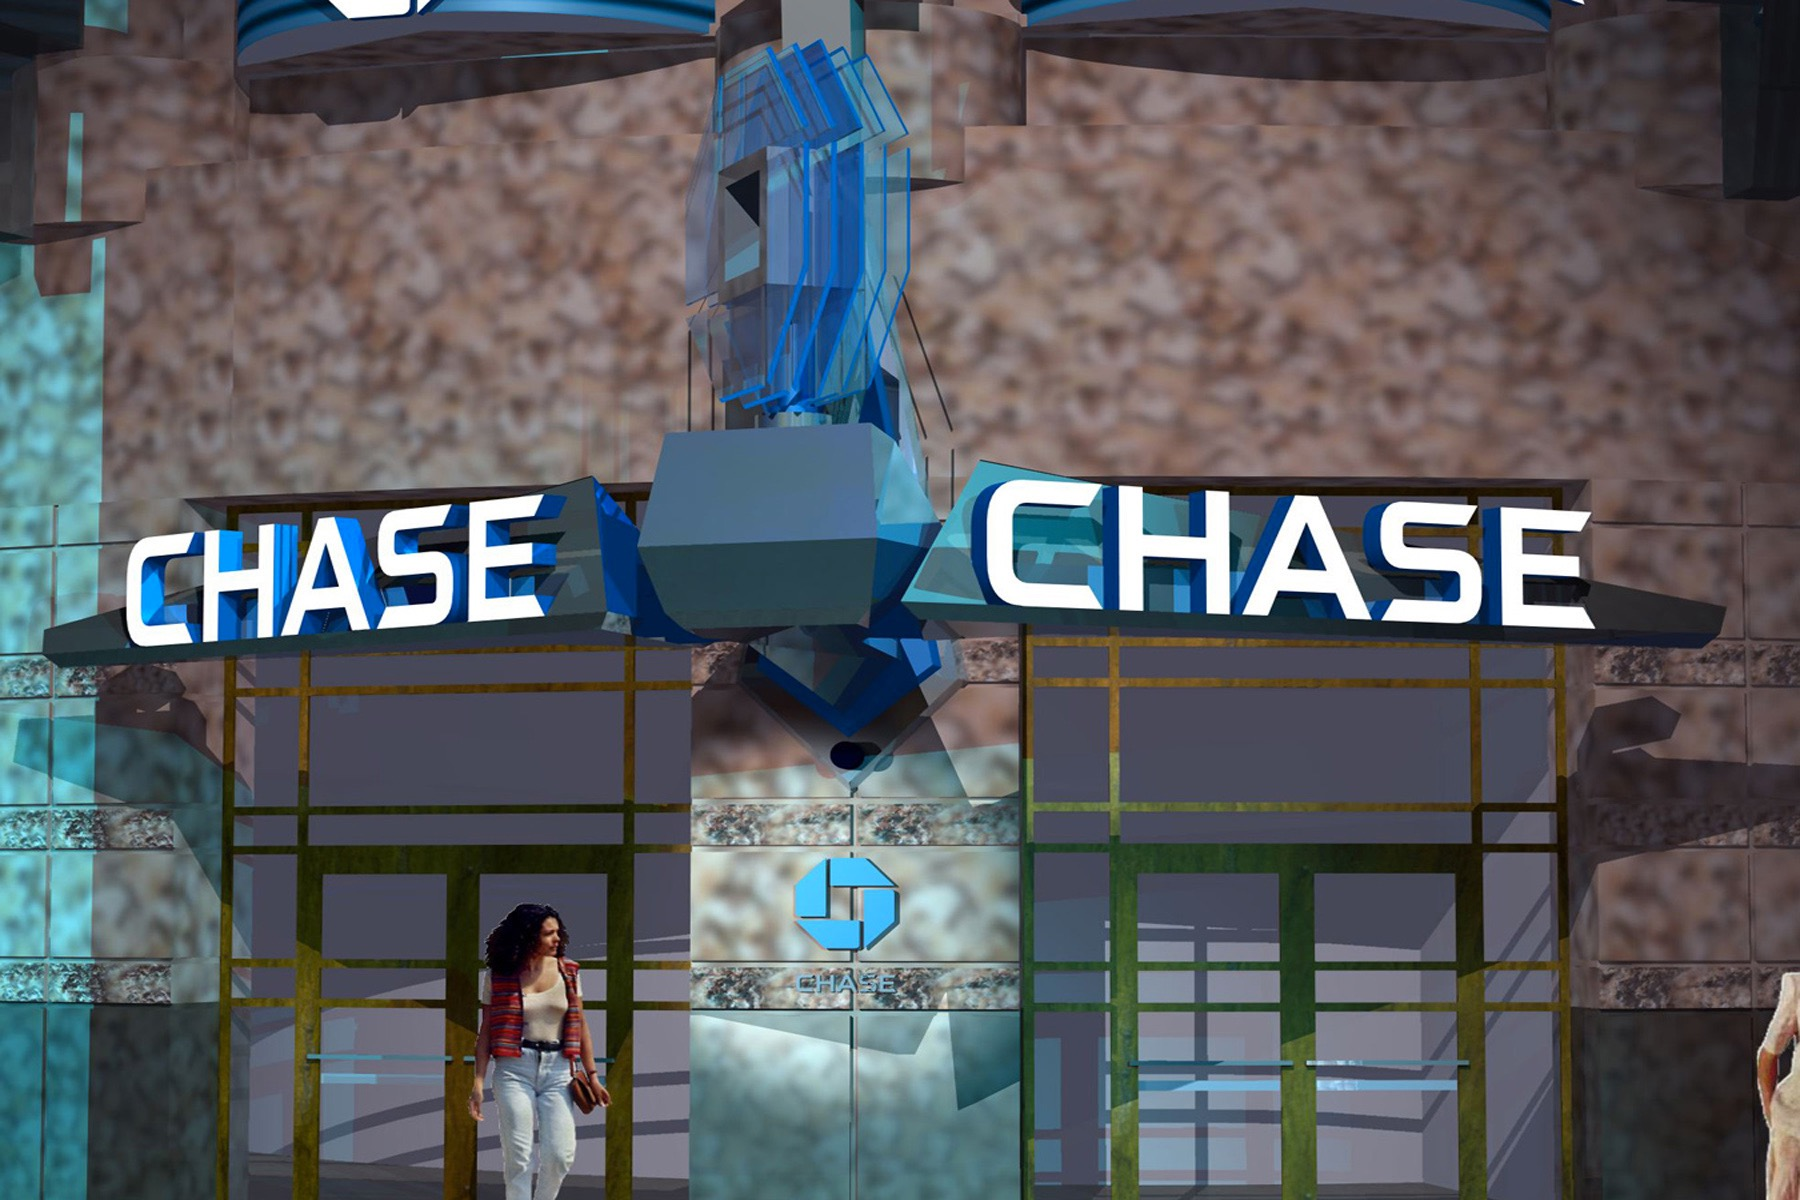 Chase Bank Flagship Signage in Times Square